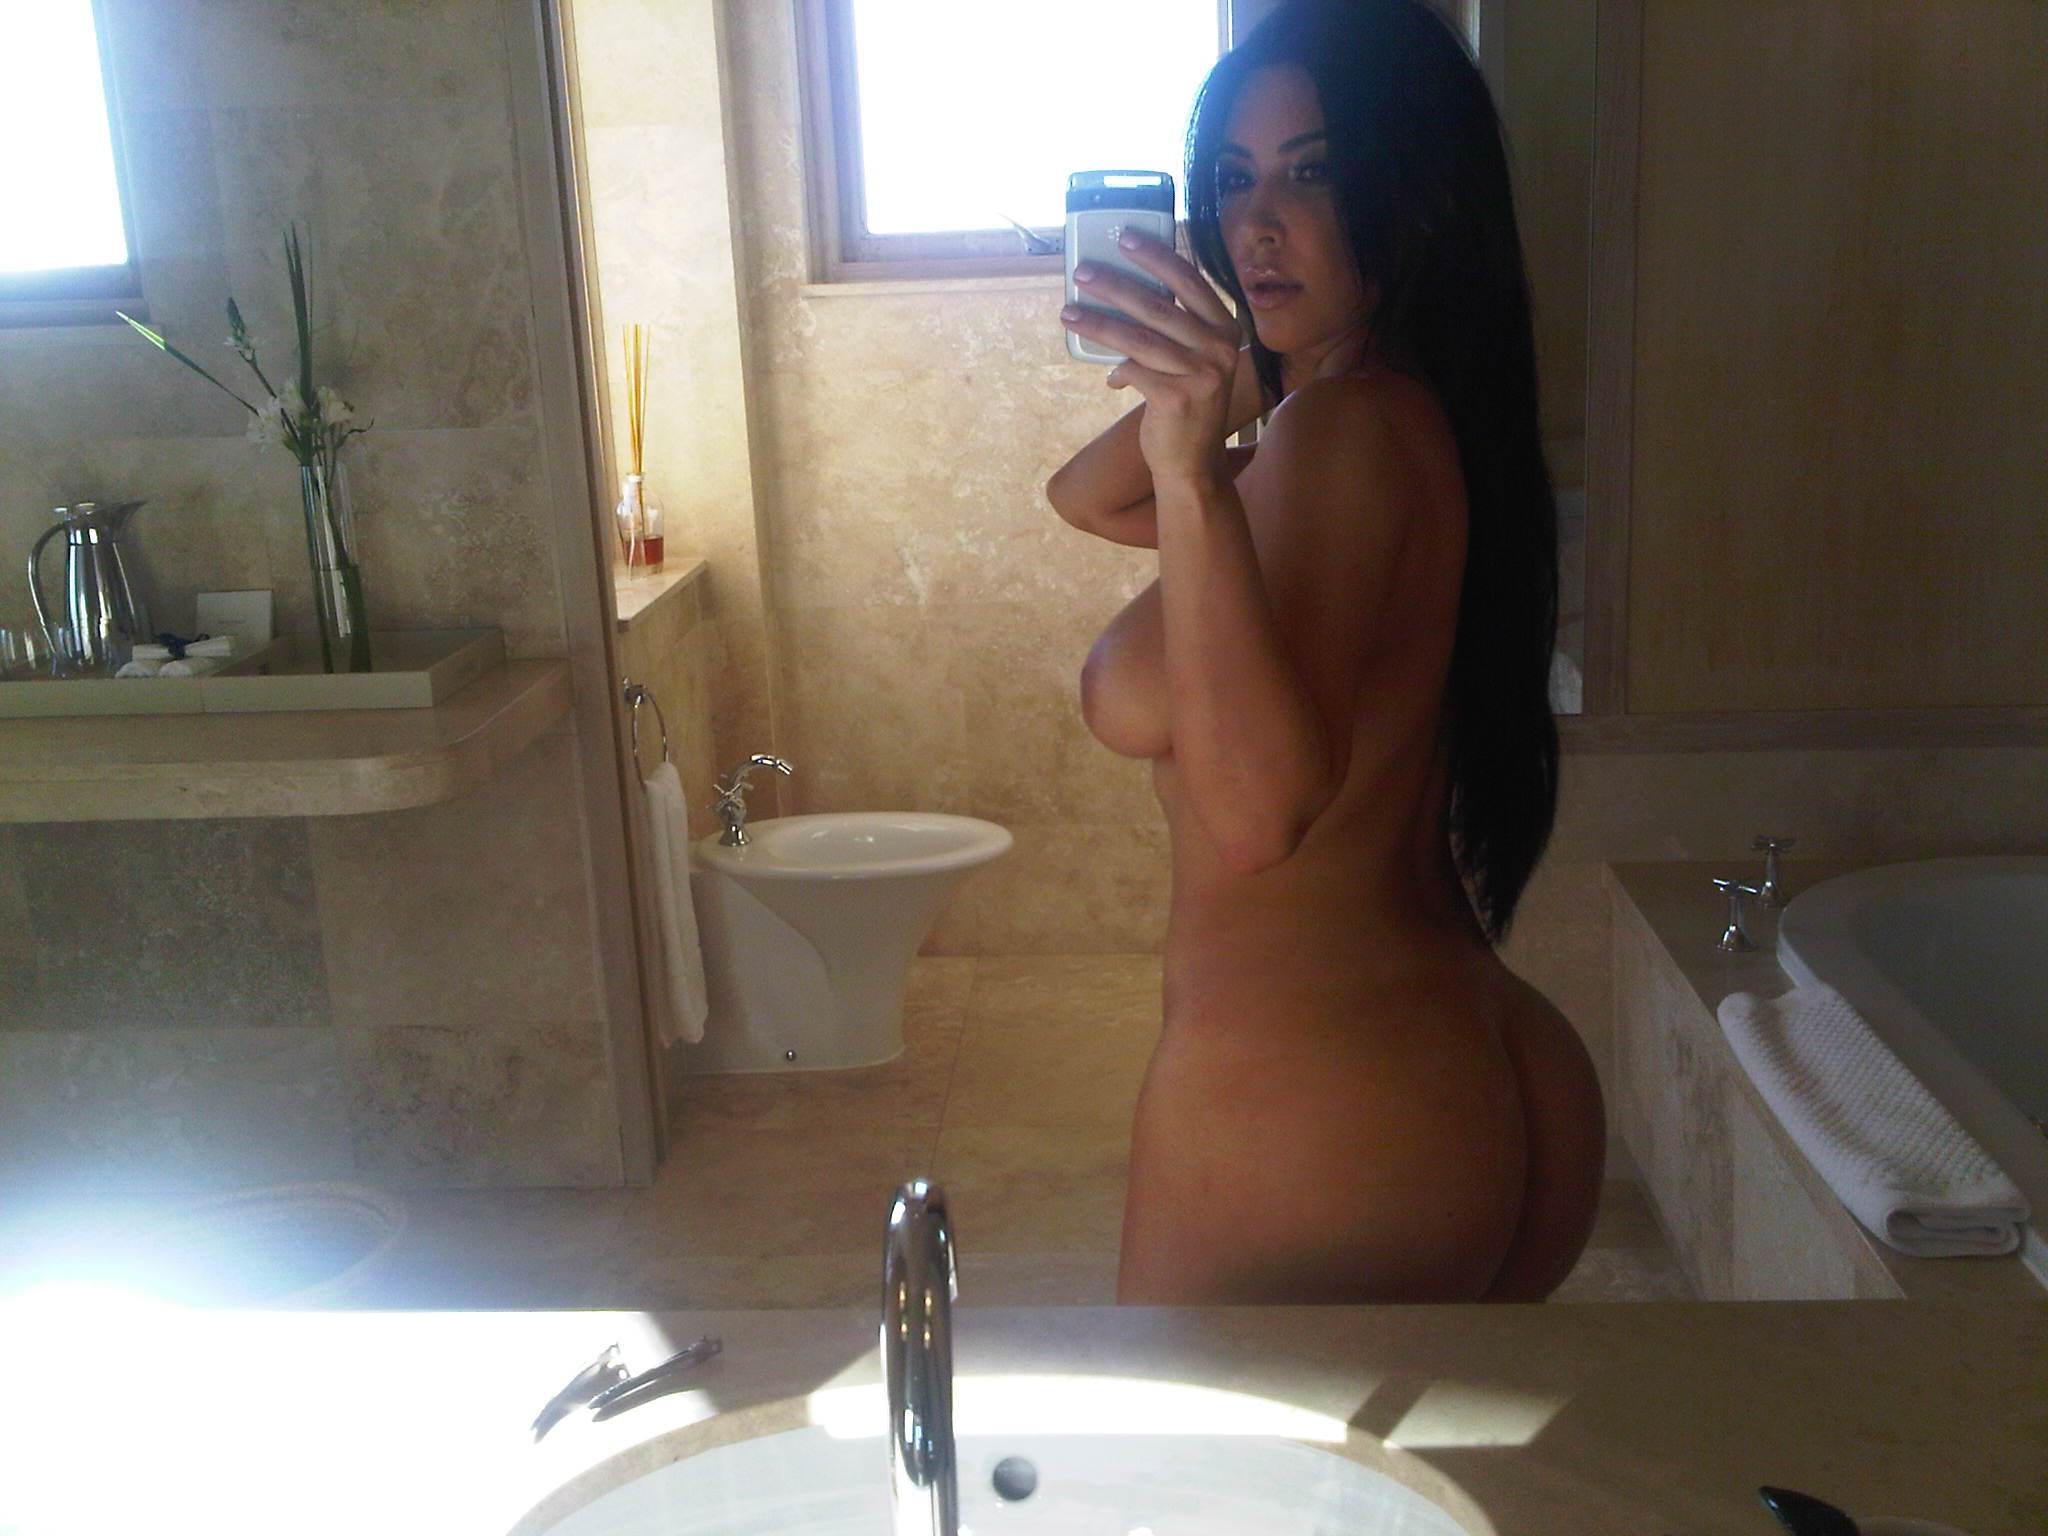 free adult video chat for people looking